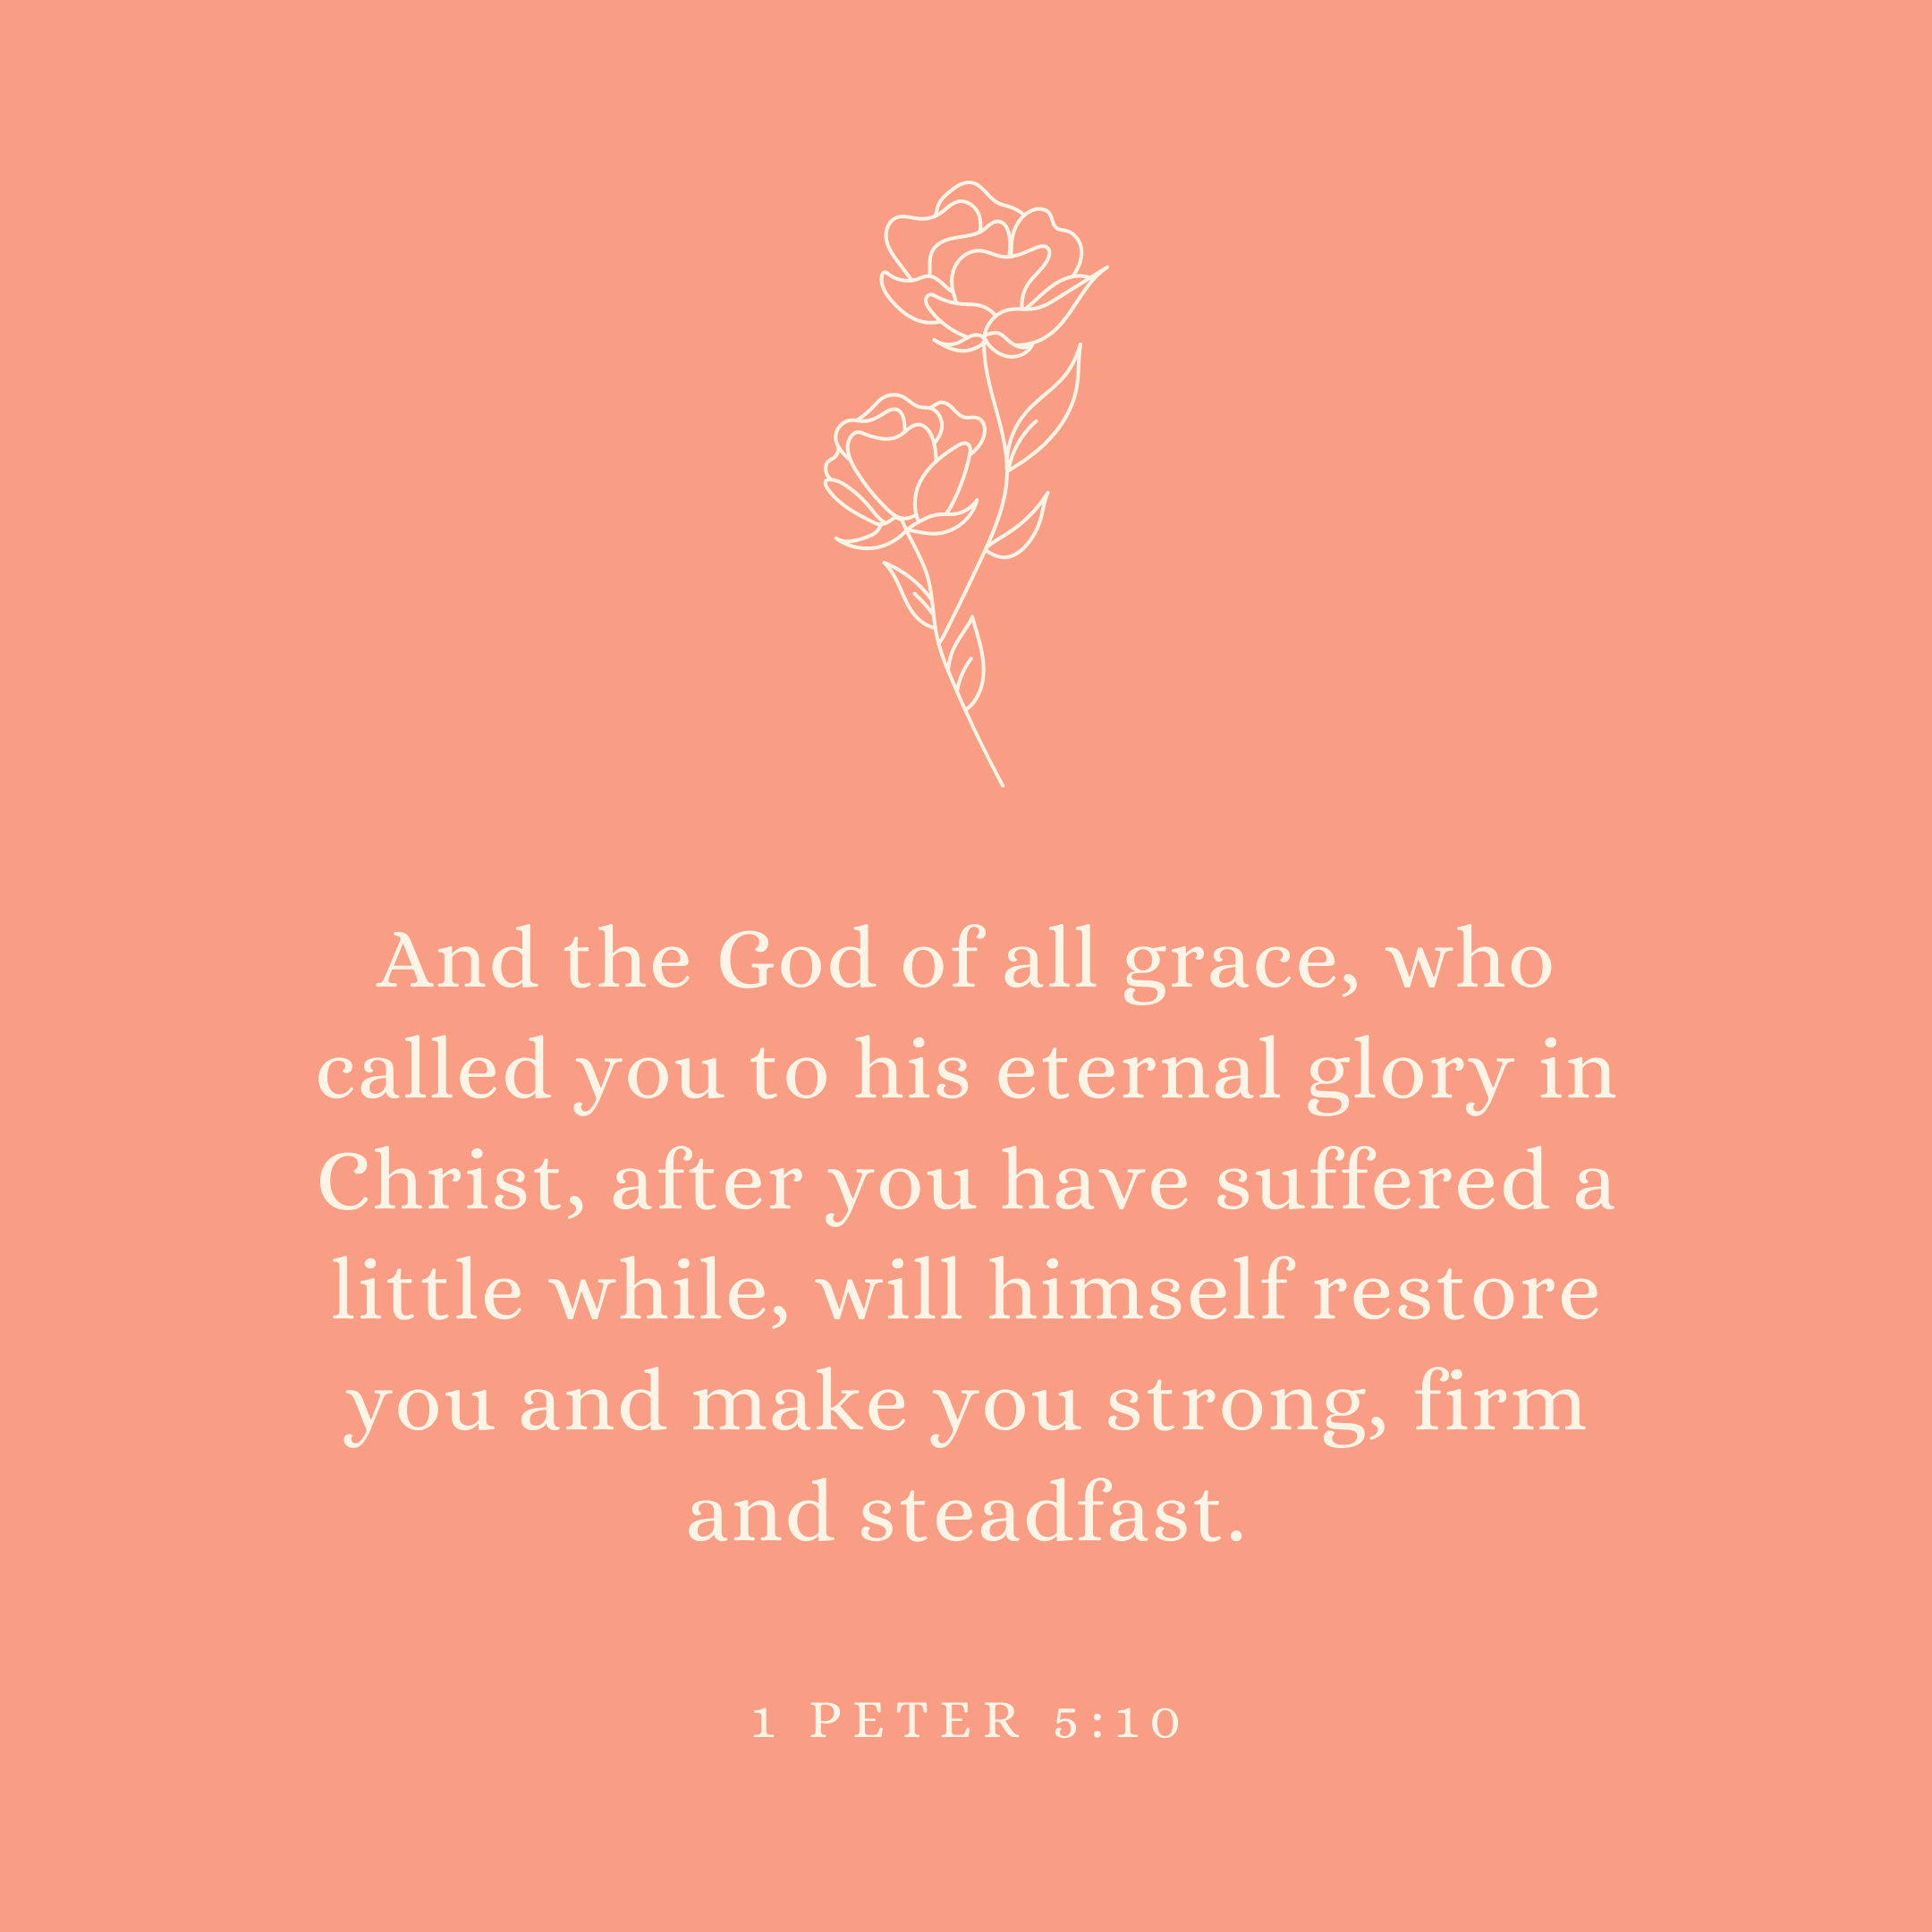 1 Peter 5:10 And the God of all grace, who called you to his eternal glory in Christ, after you have suffered a little while, will himself restore you and make you strong, firm and steadfast.